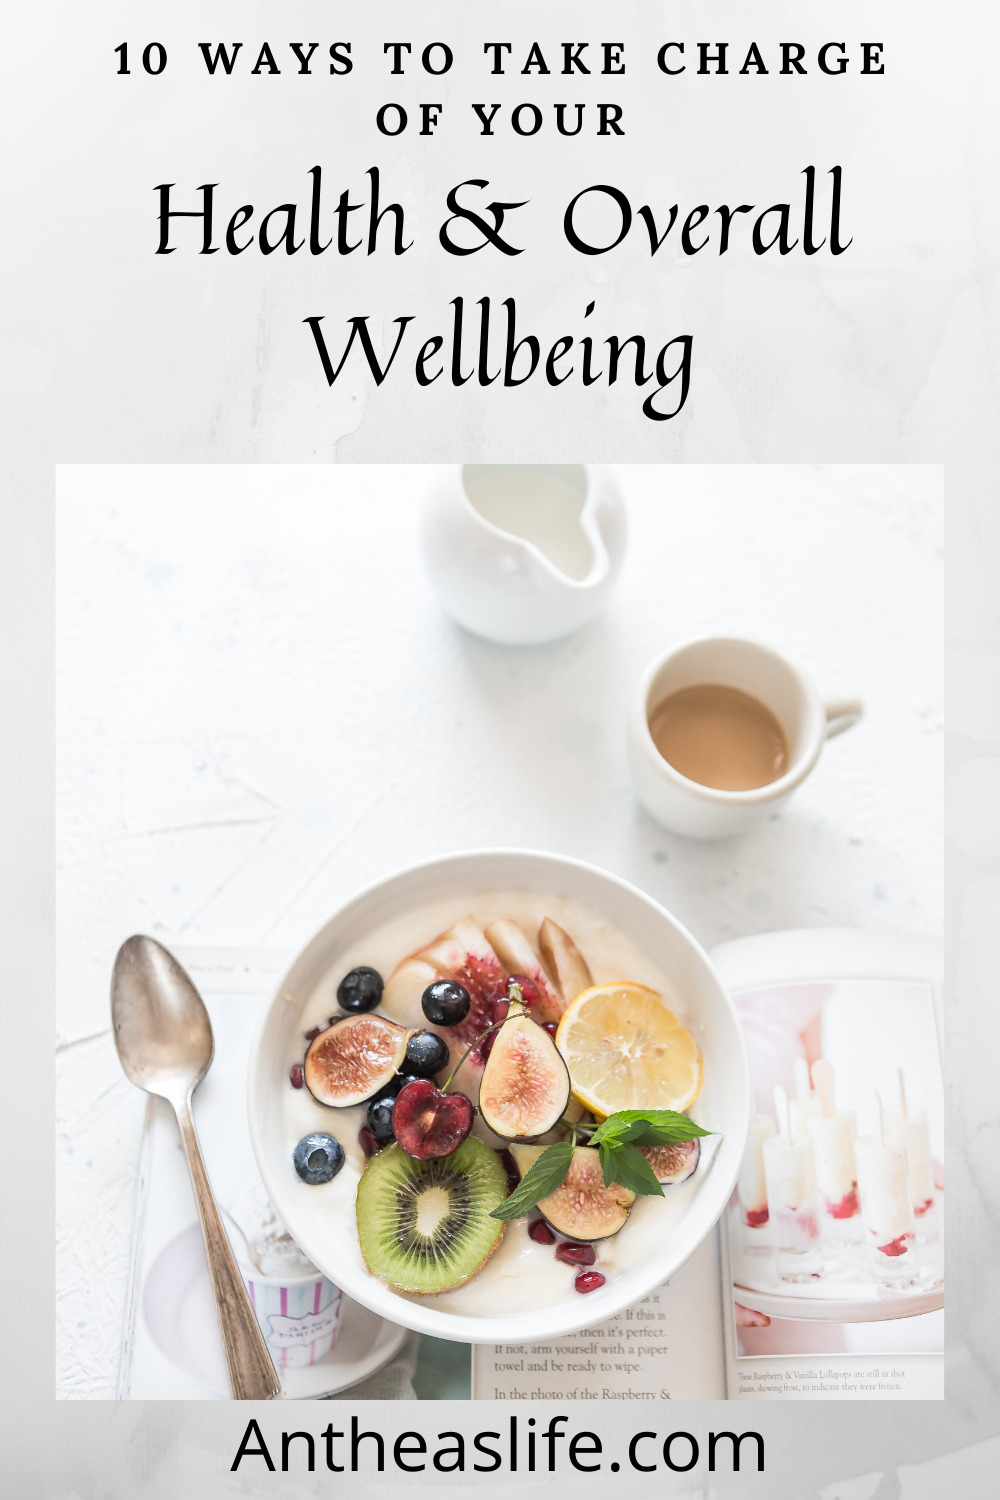 take-charge-of-your-health-and-overall-wellbeing